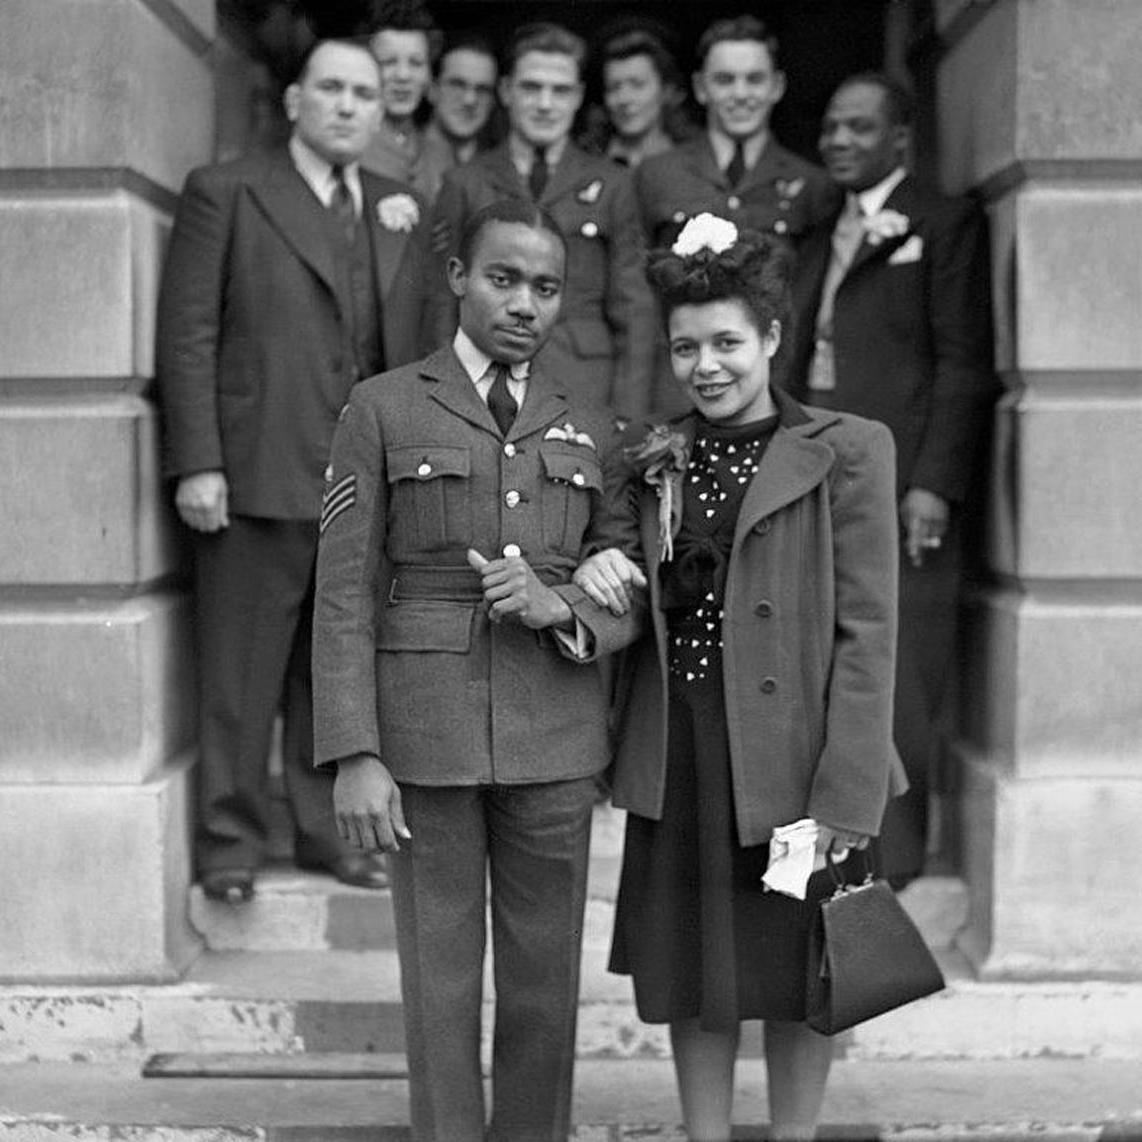 Wartime Wedding RAF sergeant Owen Sylvester of the West Indies, with Laureen Goodare of St Pancras, after their wedding at St Pancras Town Hall, London, 21st October 1944. (Photo by Reg Speller/Fox Photos/Hulton Archive/Getty Images)